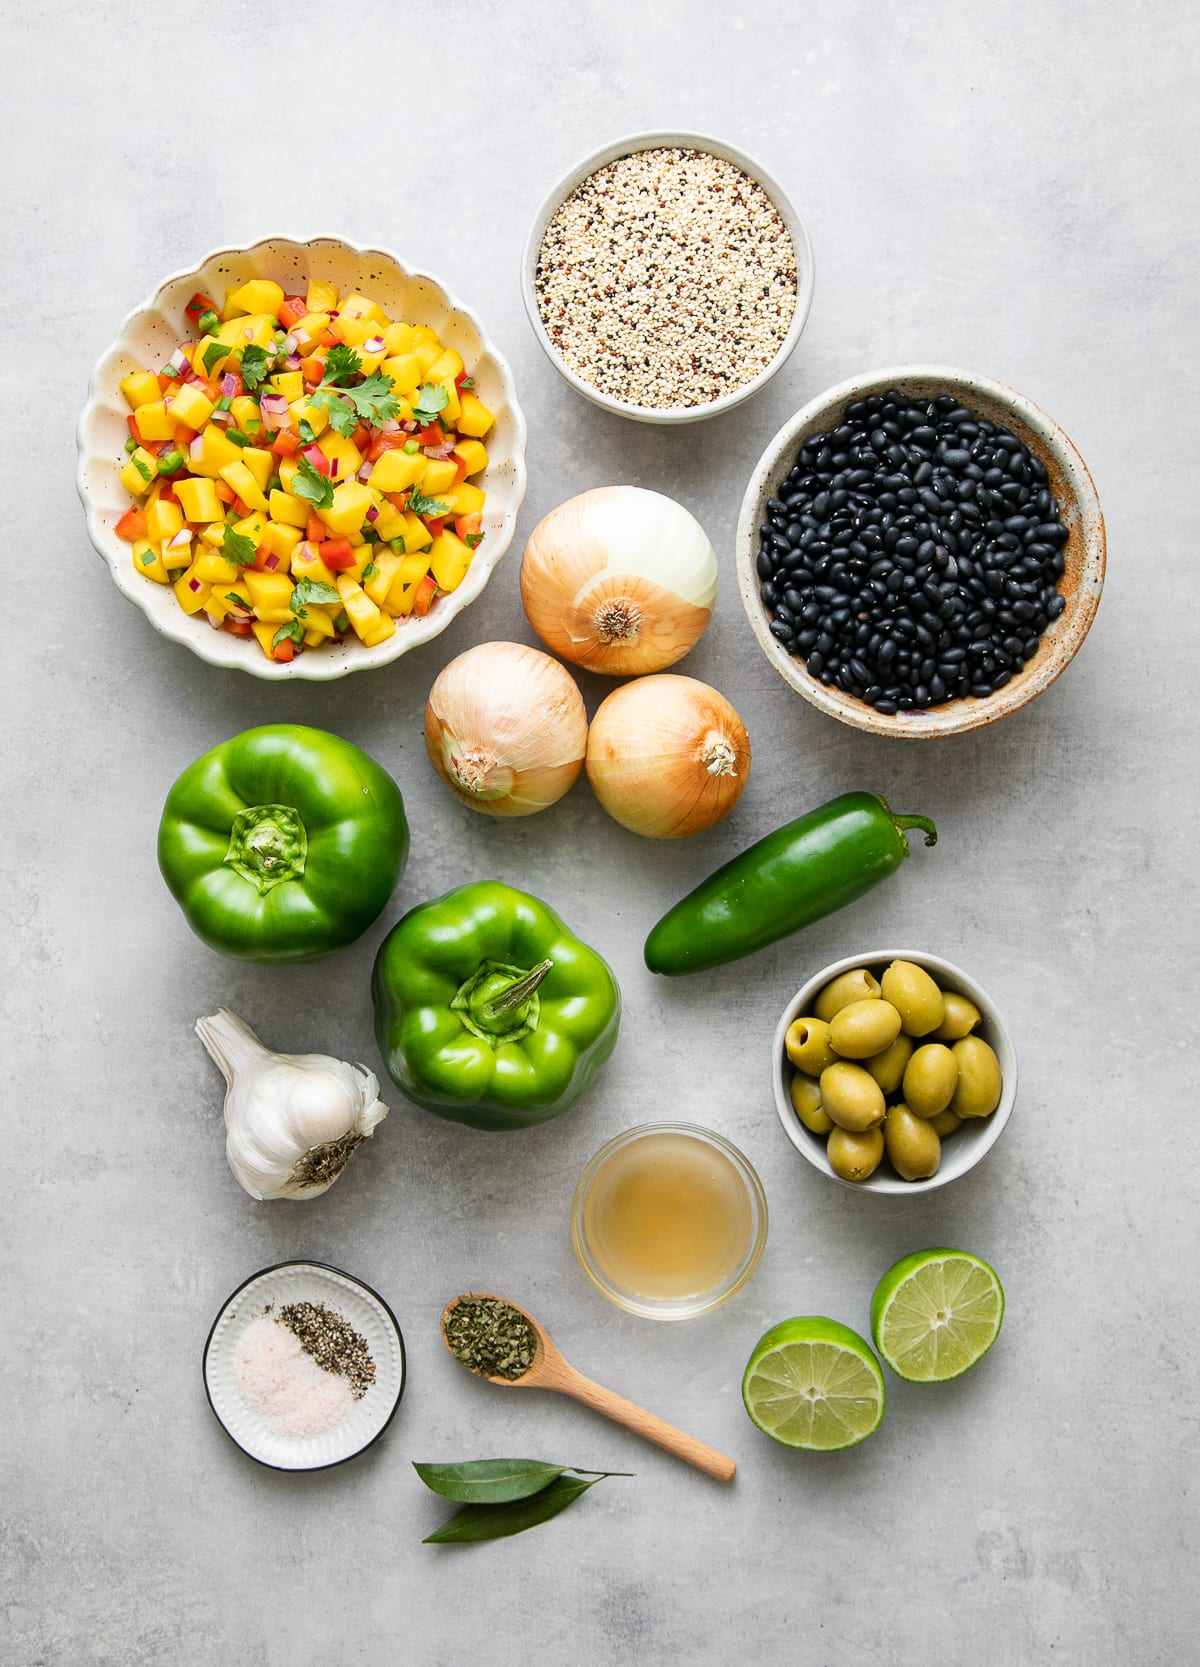 top down view of ingredients used to make cuban black beans with quinoa and mango salsa.